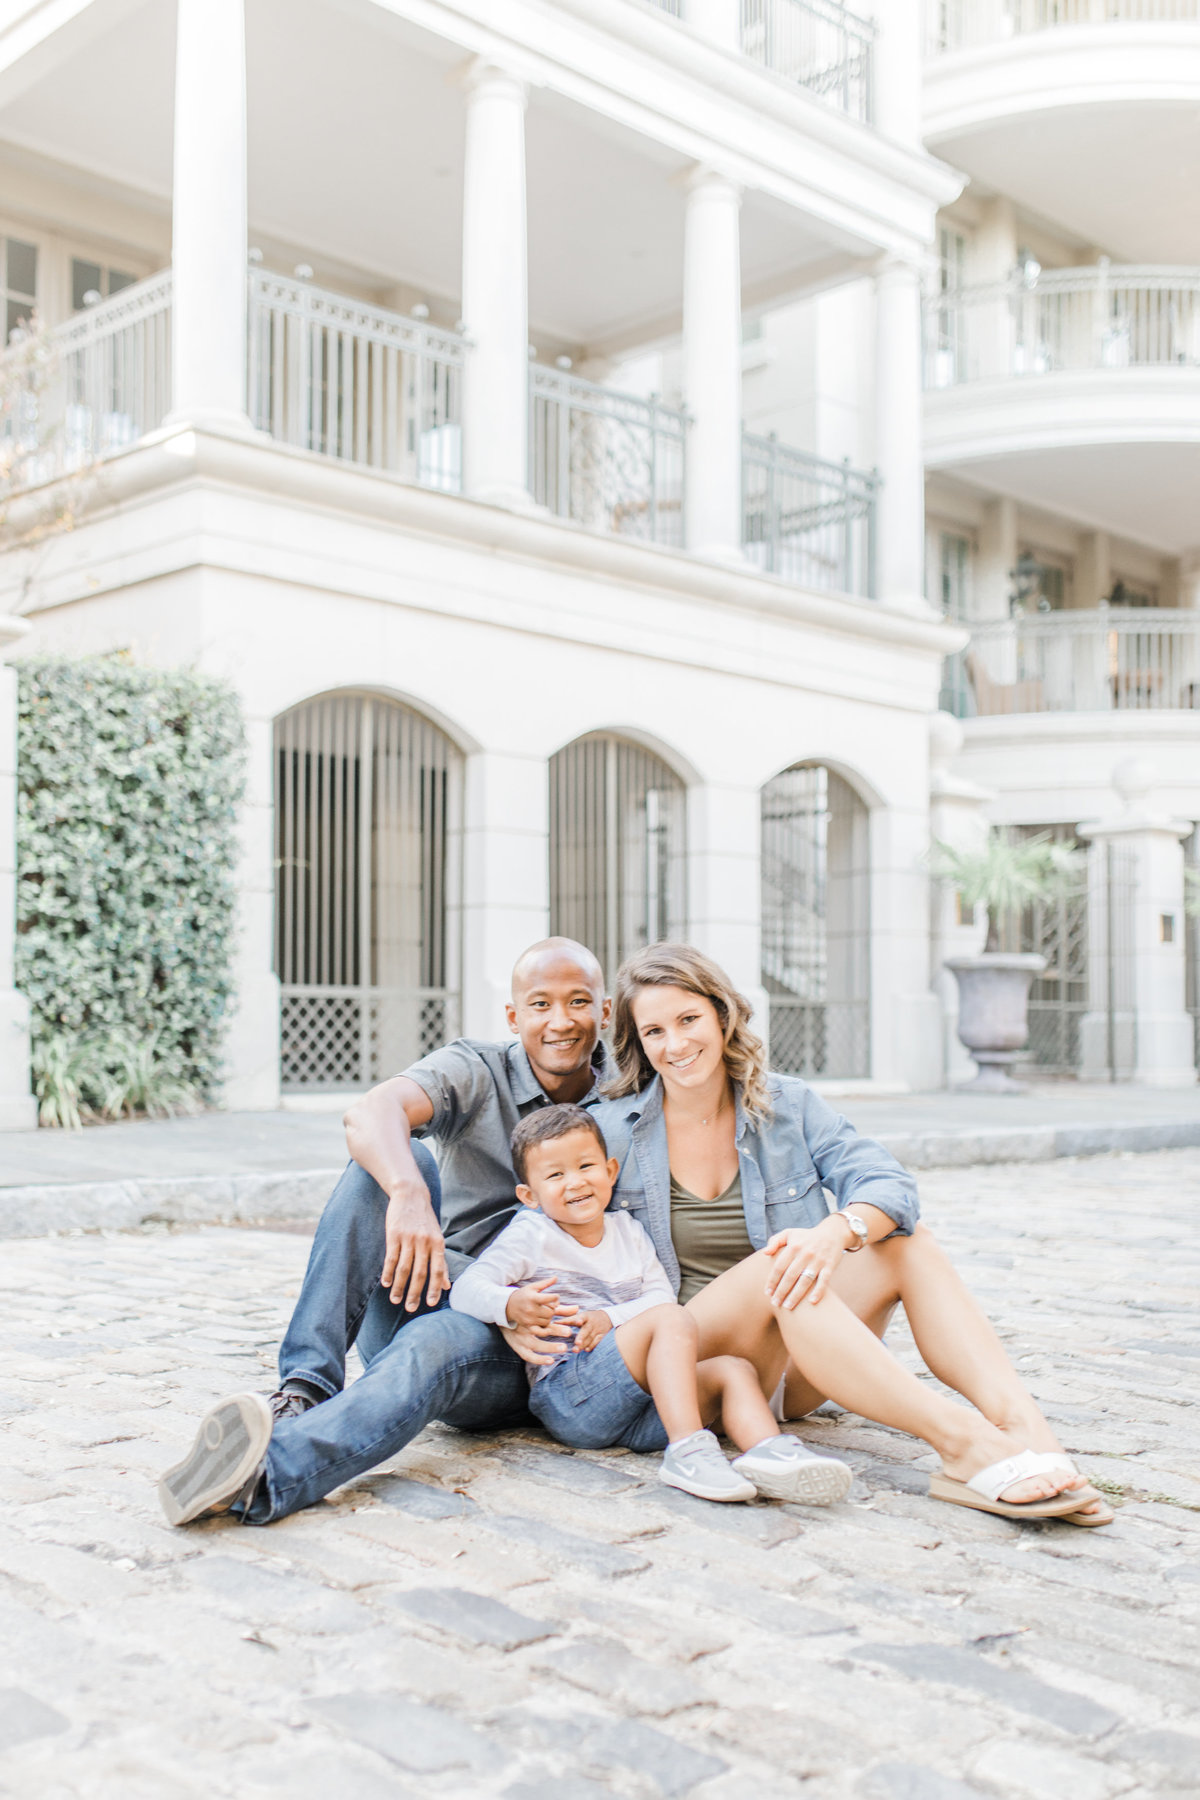 Downtown-Charleston-Family-Photos-Laura-Ryan-Photography-27